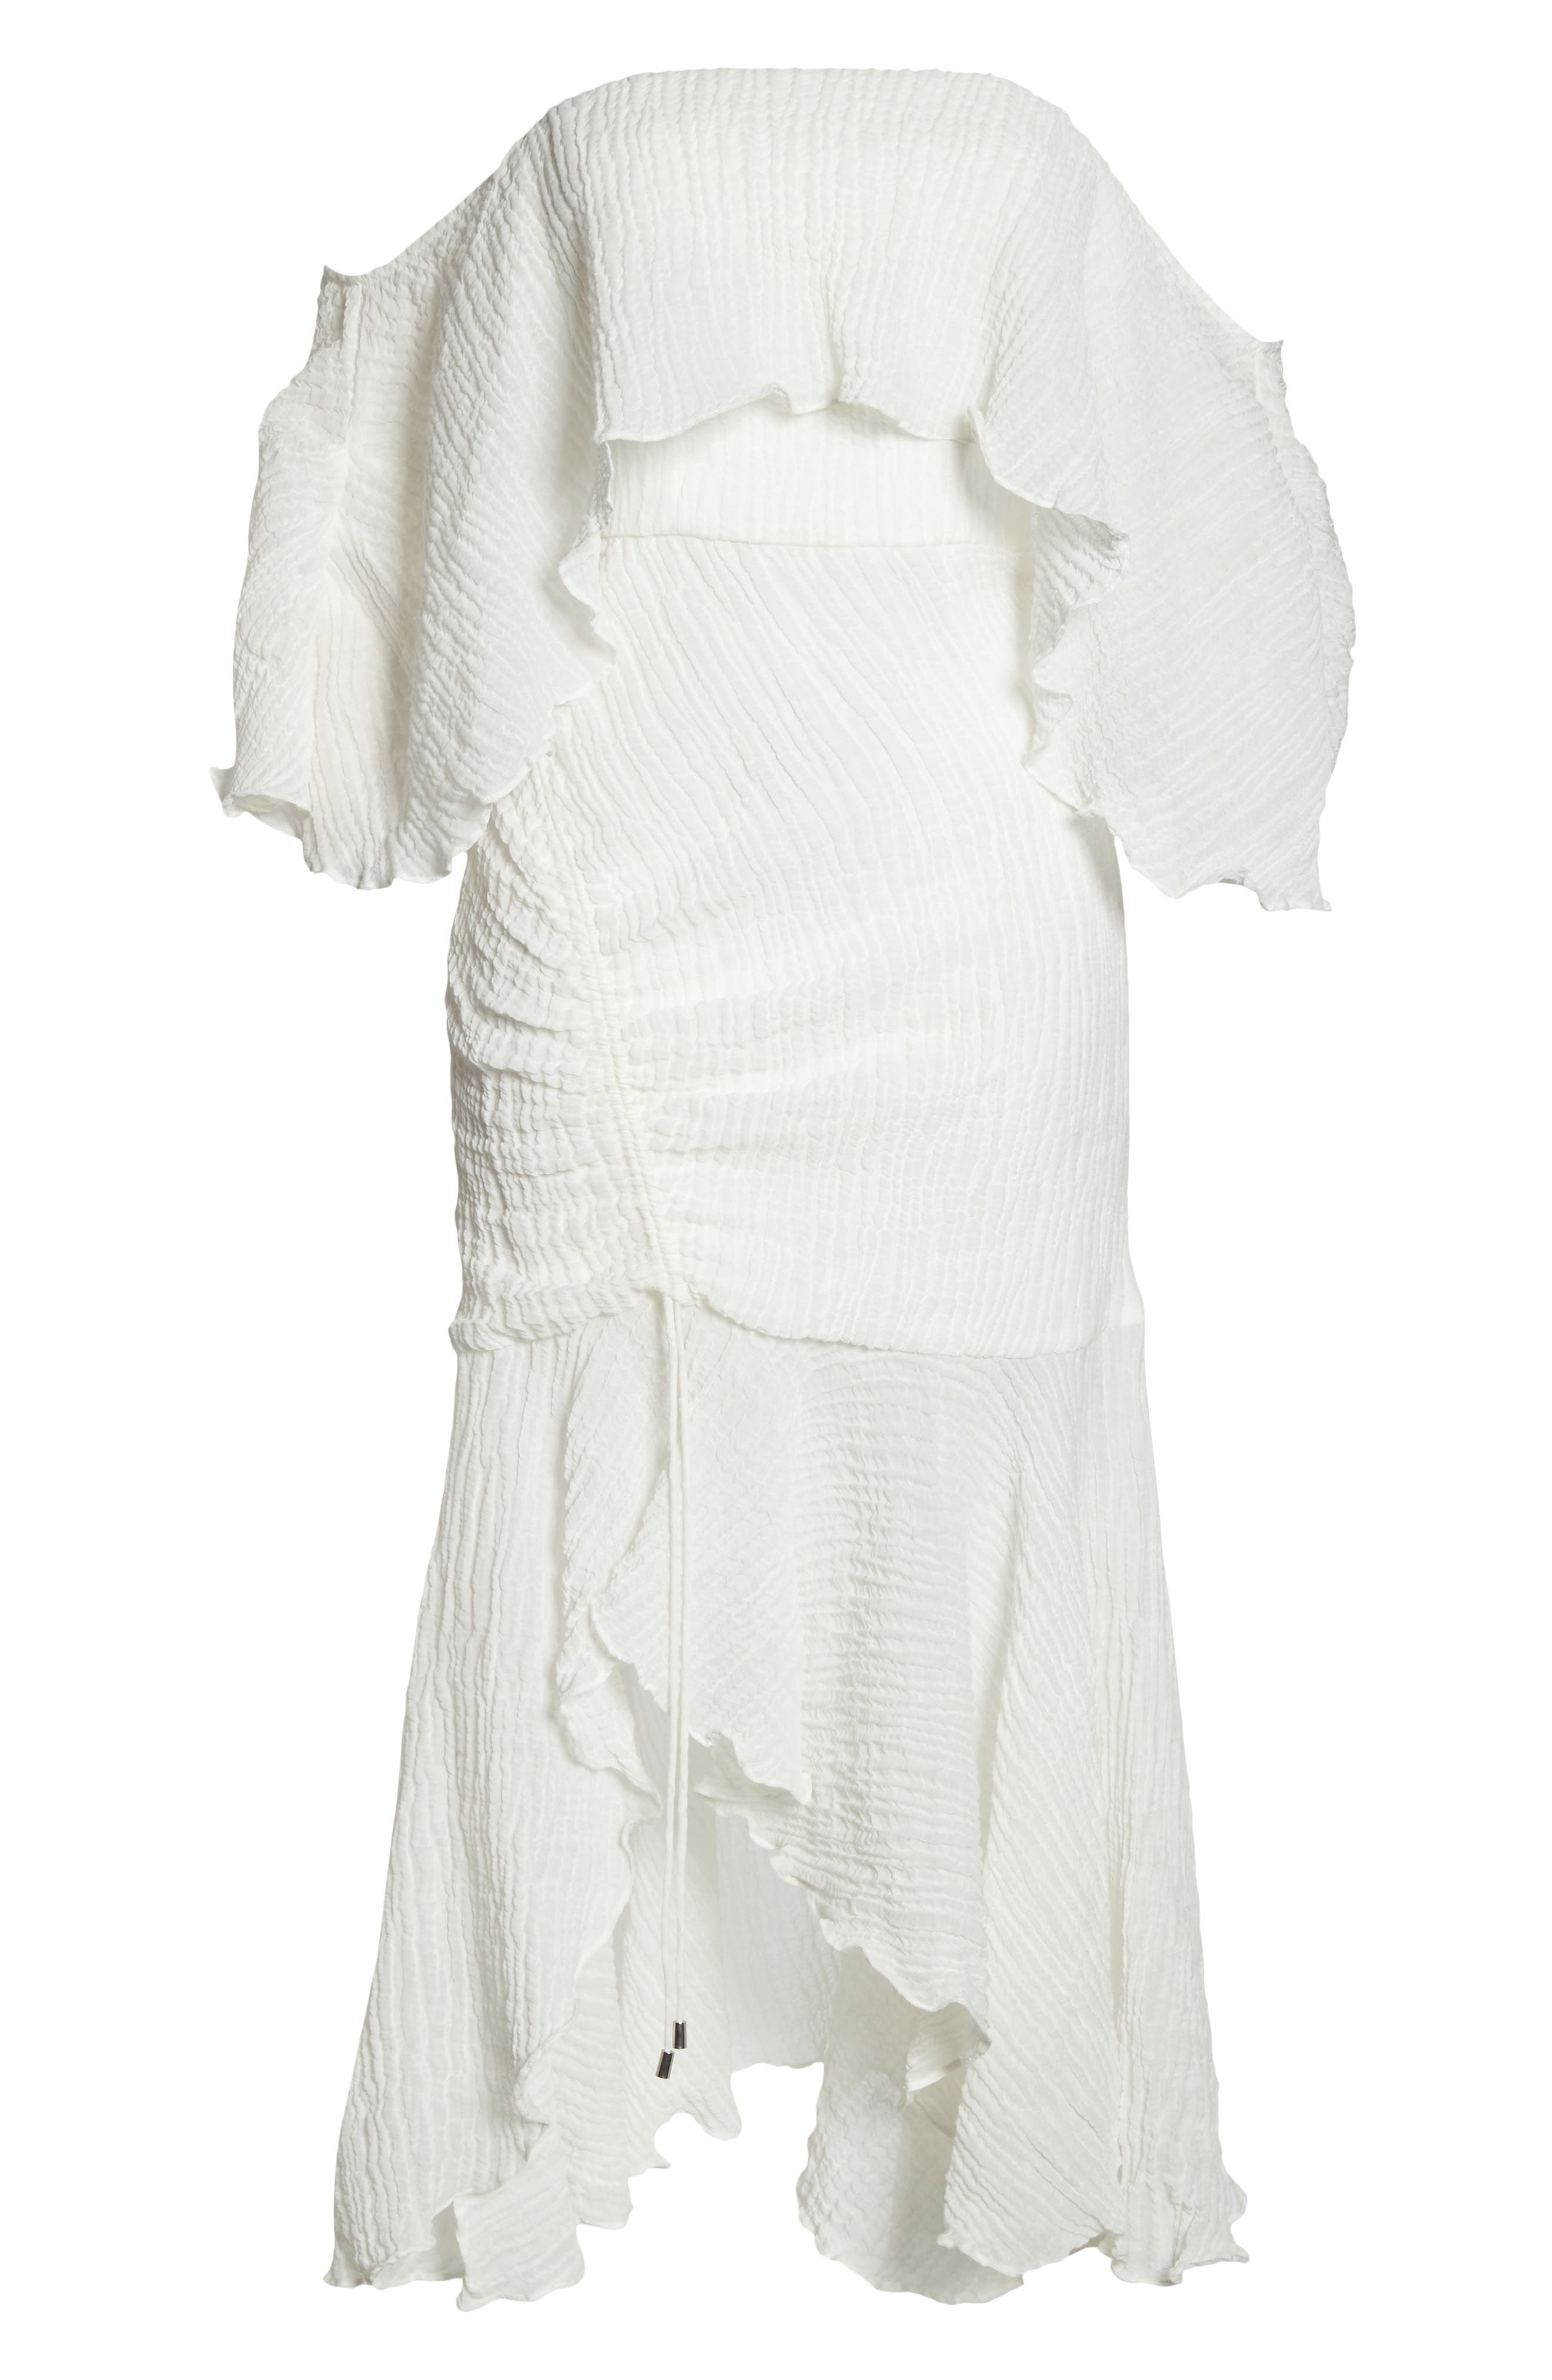 Sacrifices Ruched Off the Shoulder Dress,                             Alternate thumbnail 7, color,                             Ivory